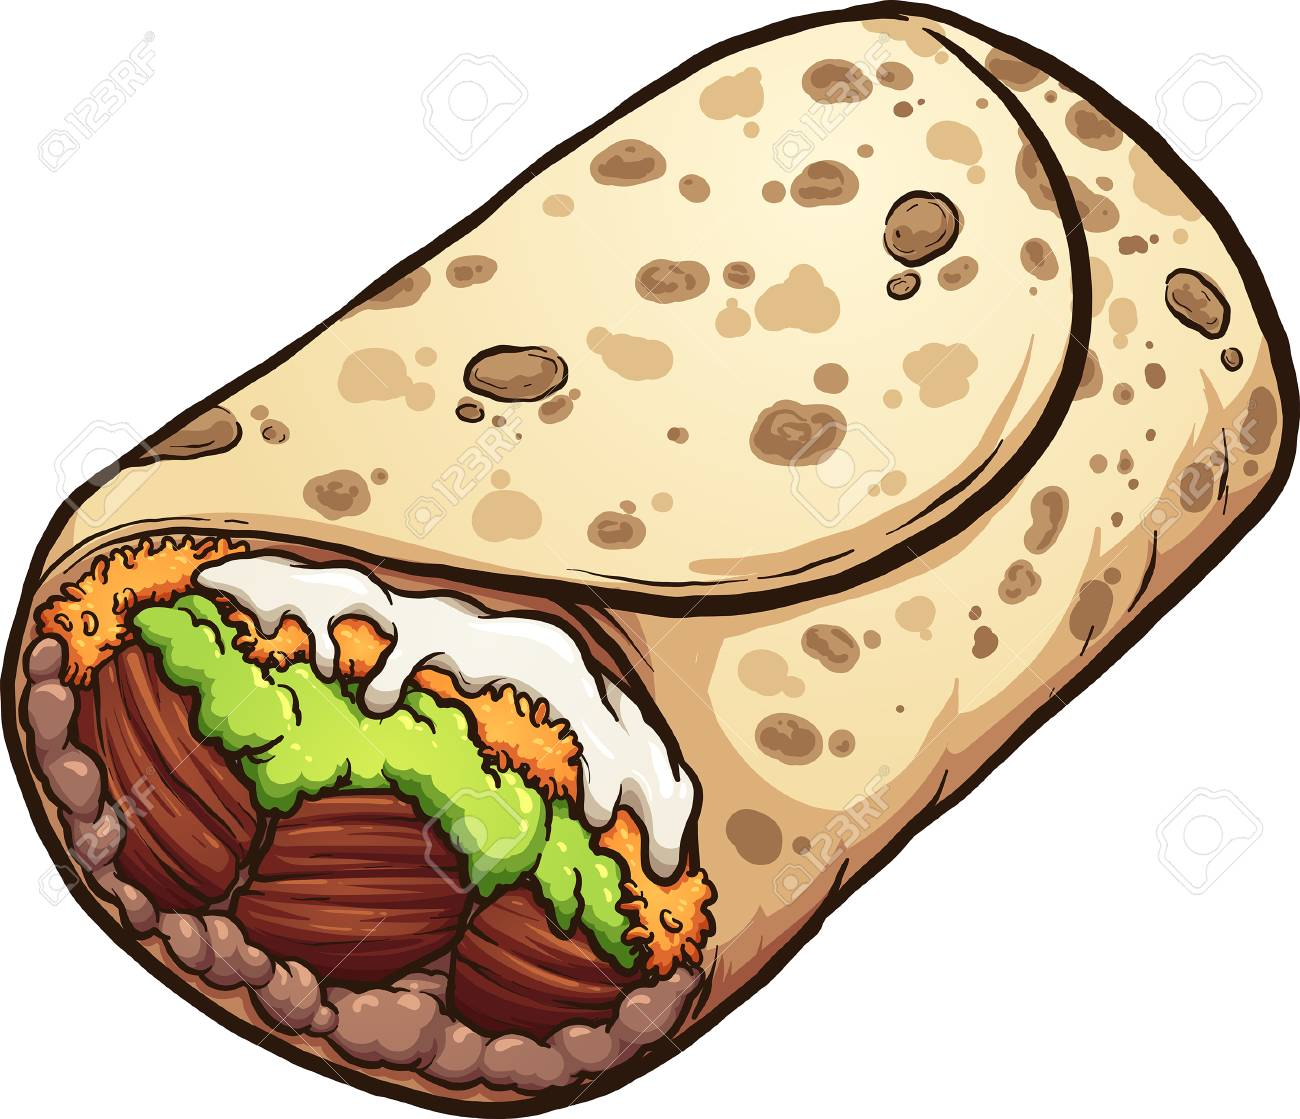 Cartoon burrito Mexican food clip art. Vector illustration with...